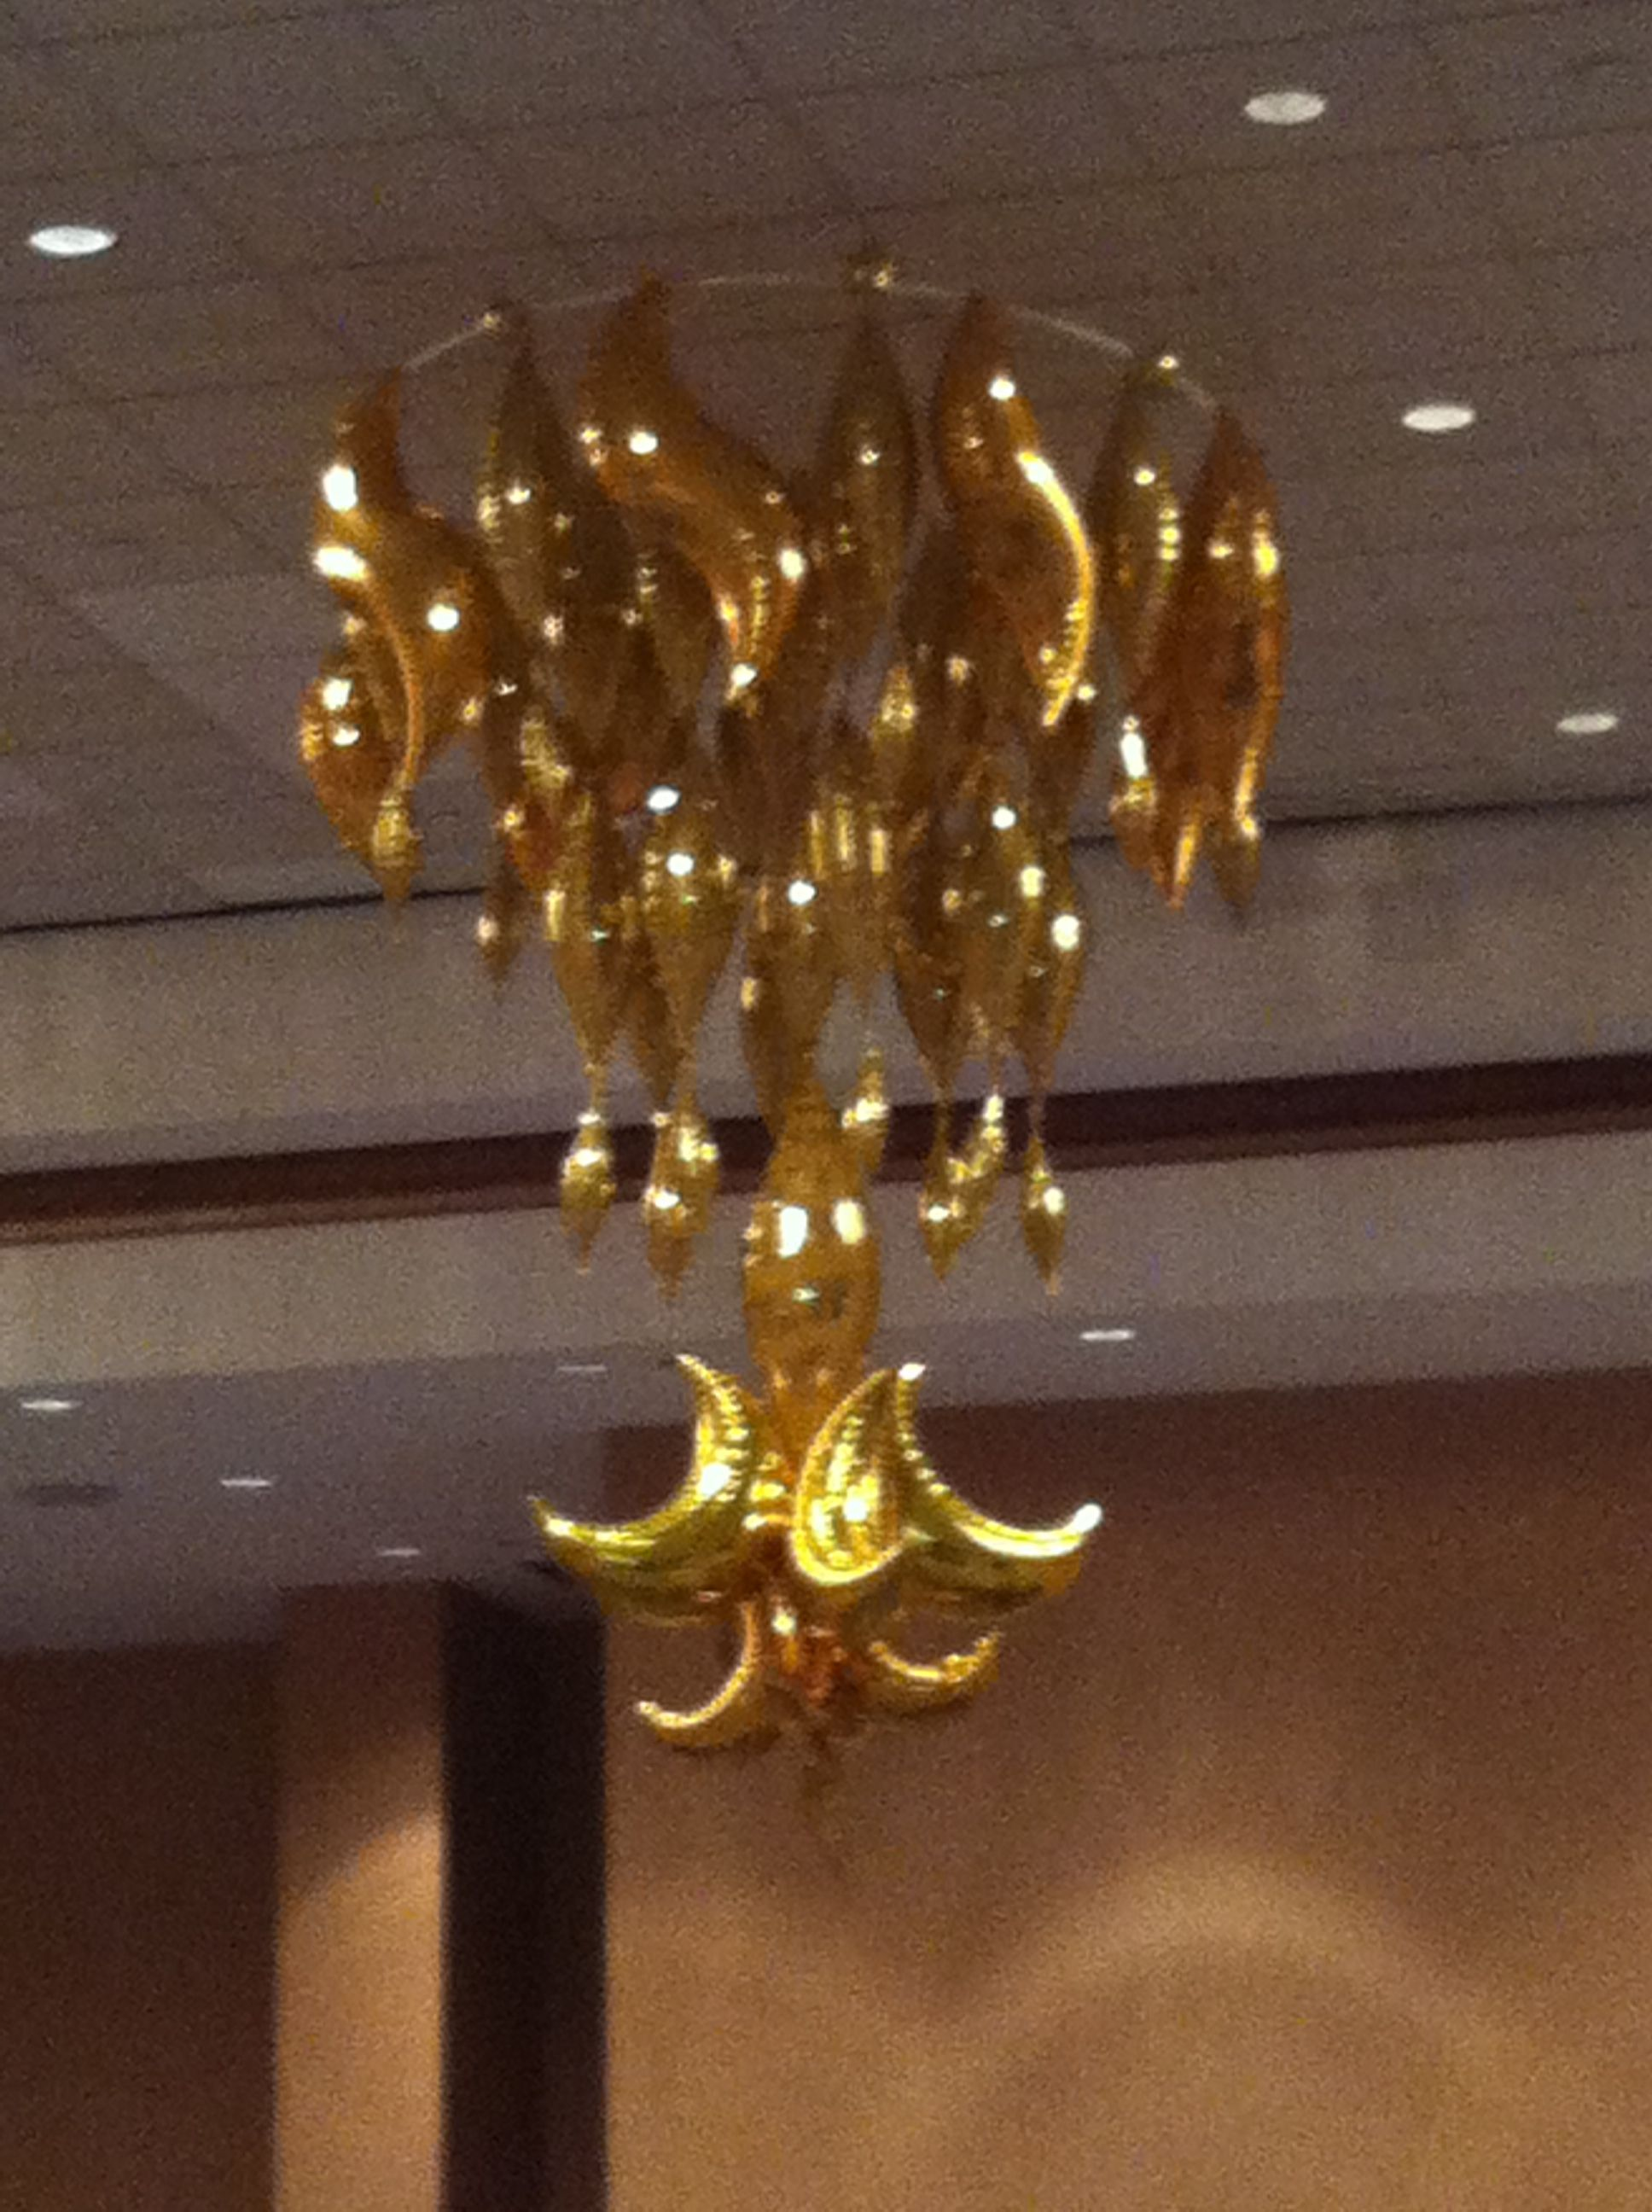 party ceiling decor that makes an impact  18 foot balloon chandelier created from tapers and